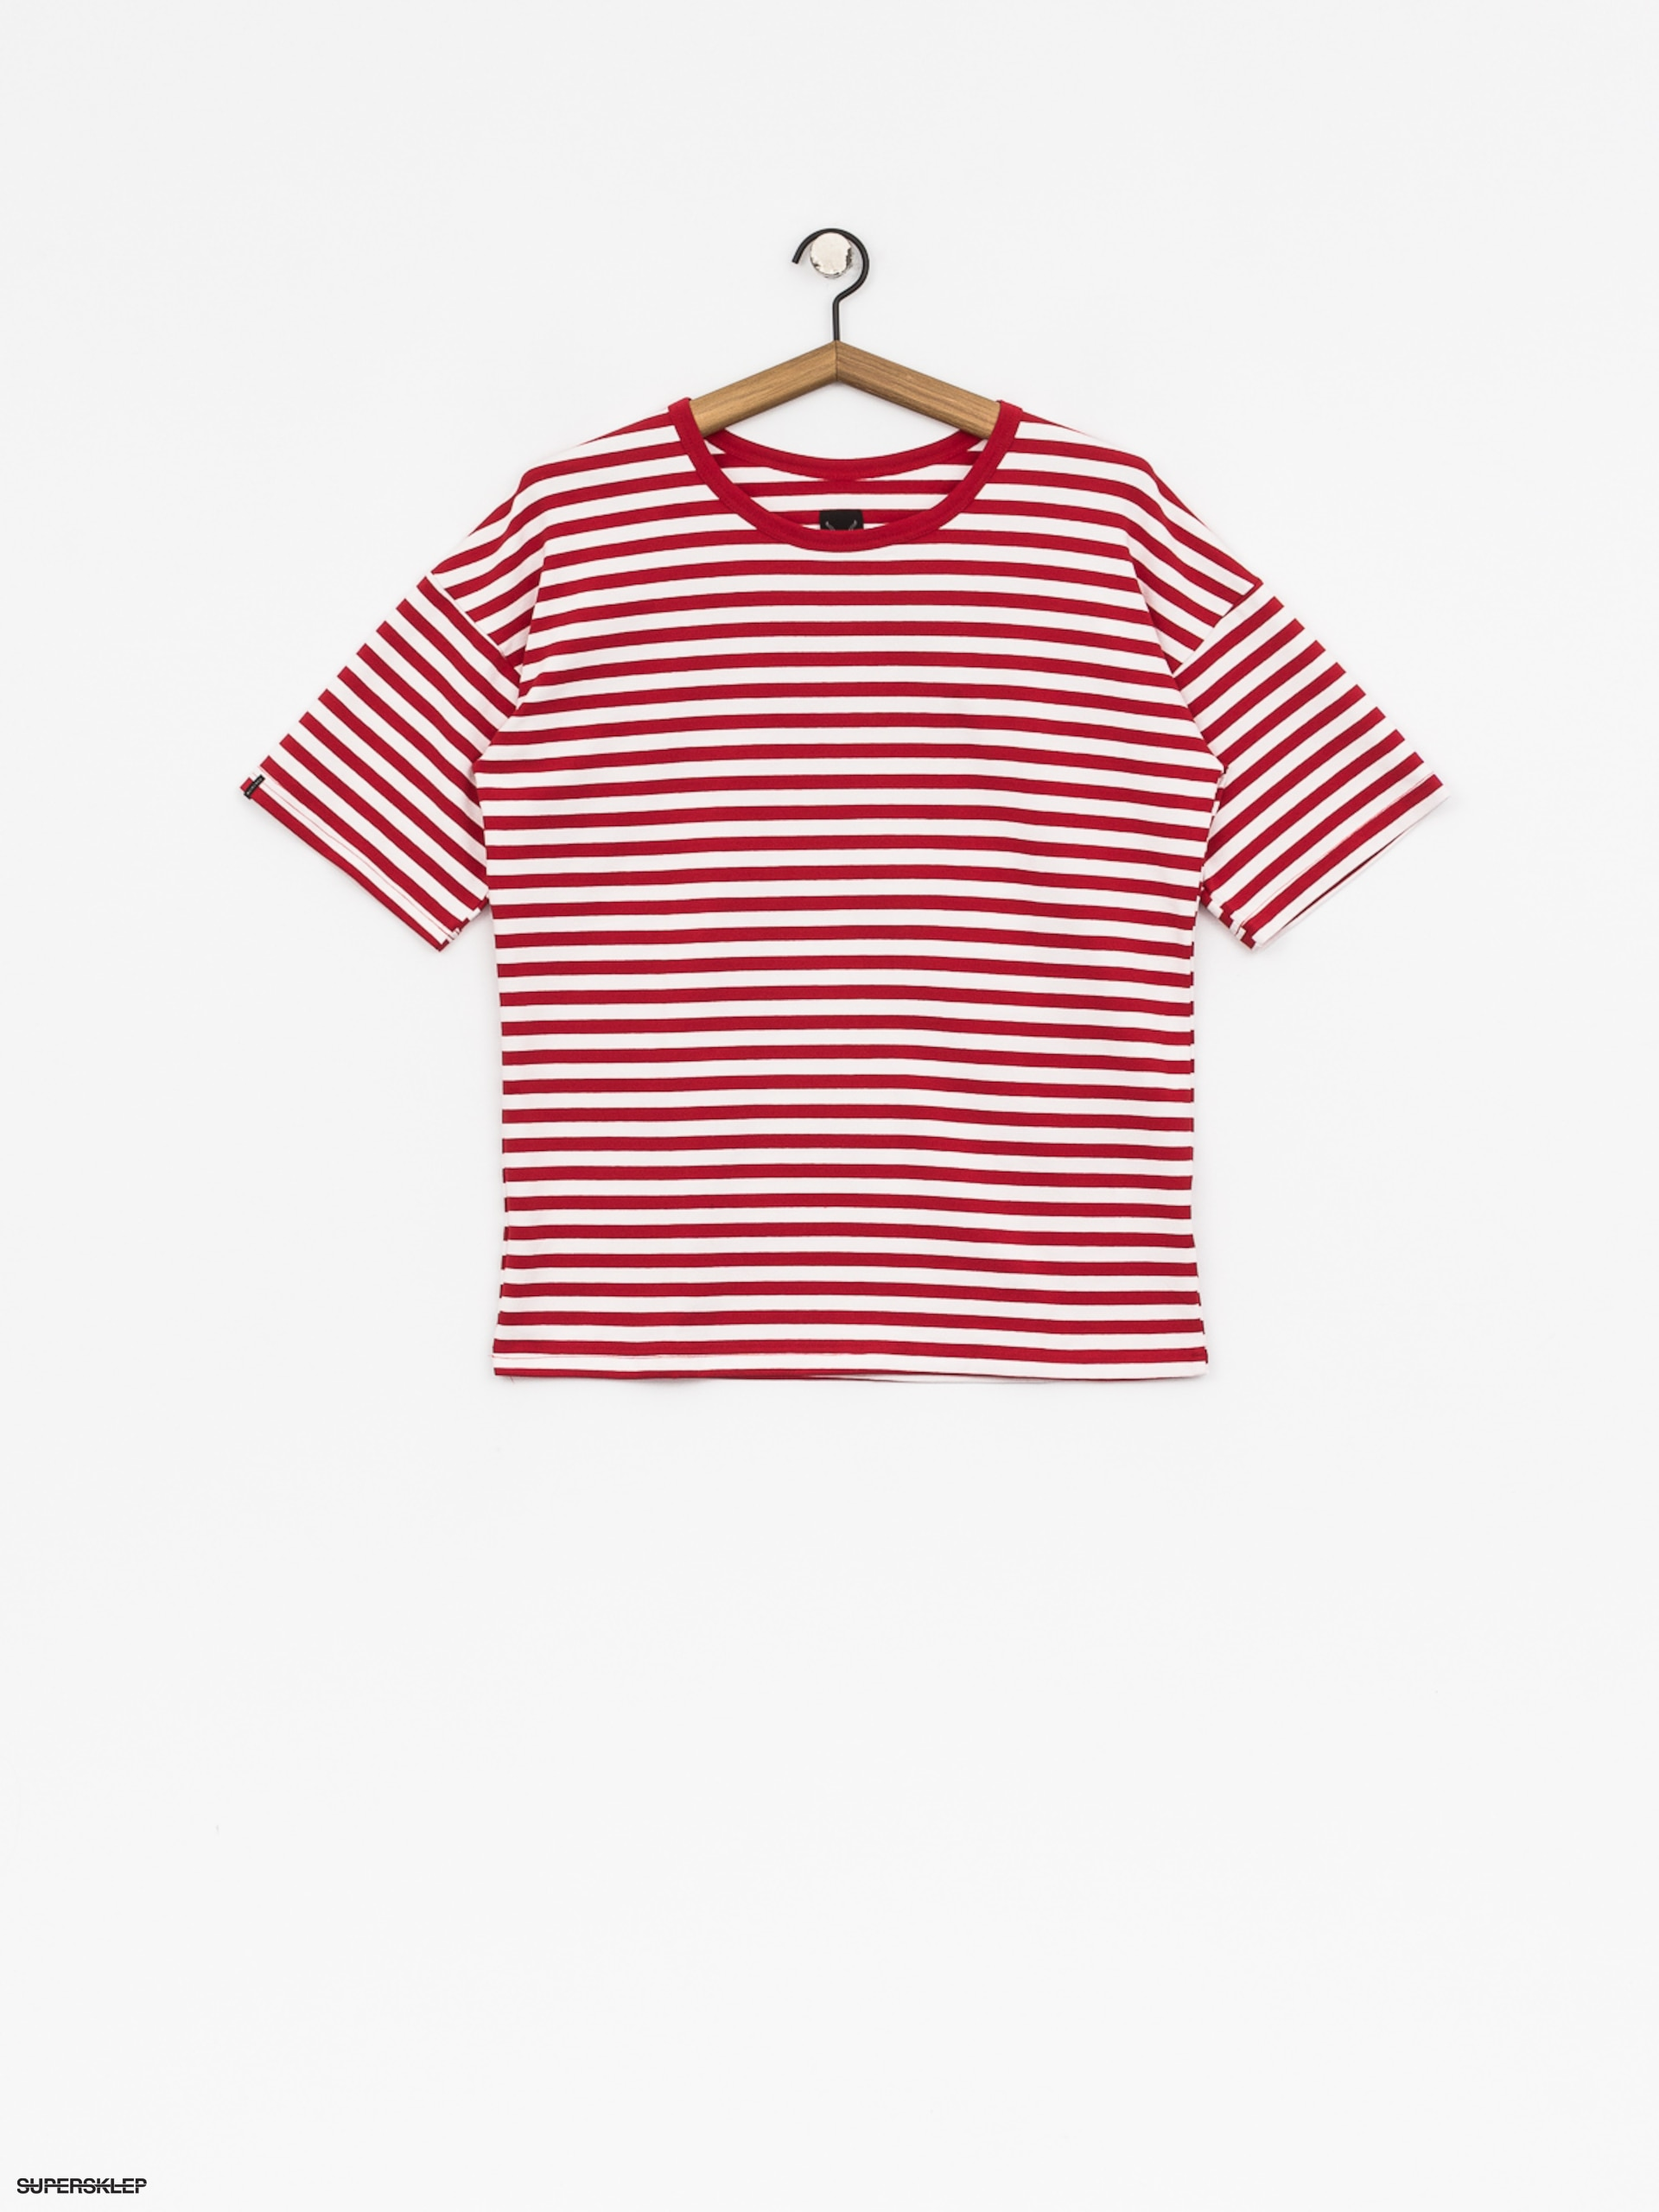 T-shirt The Hive Oversized Stripes Wmn (red/white)